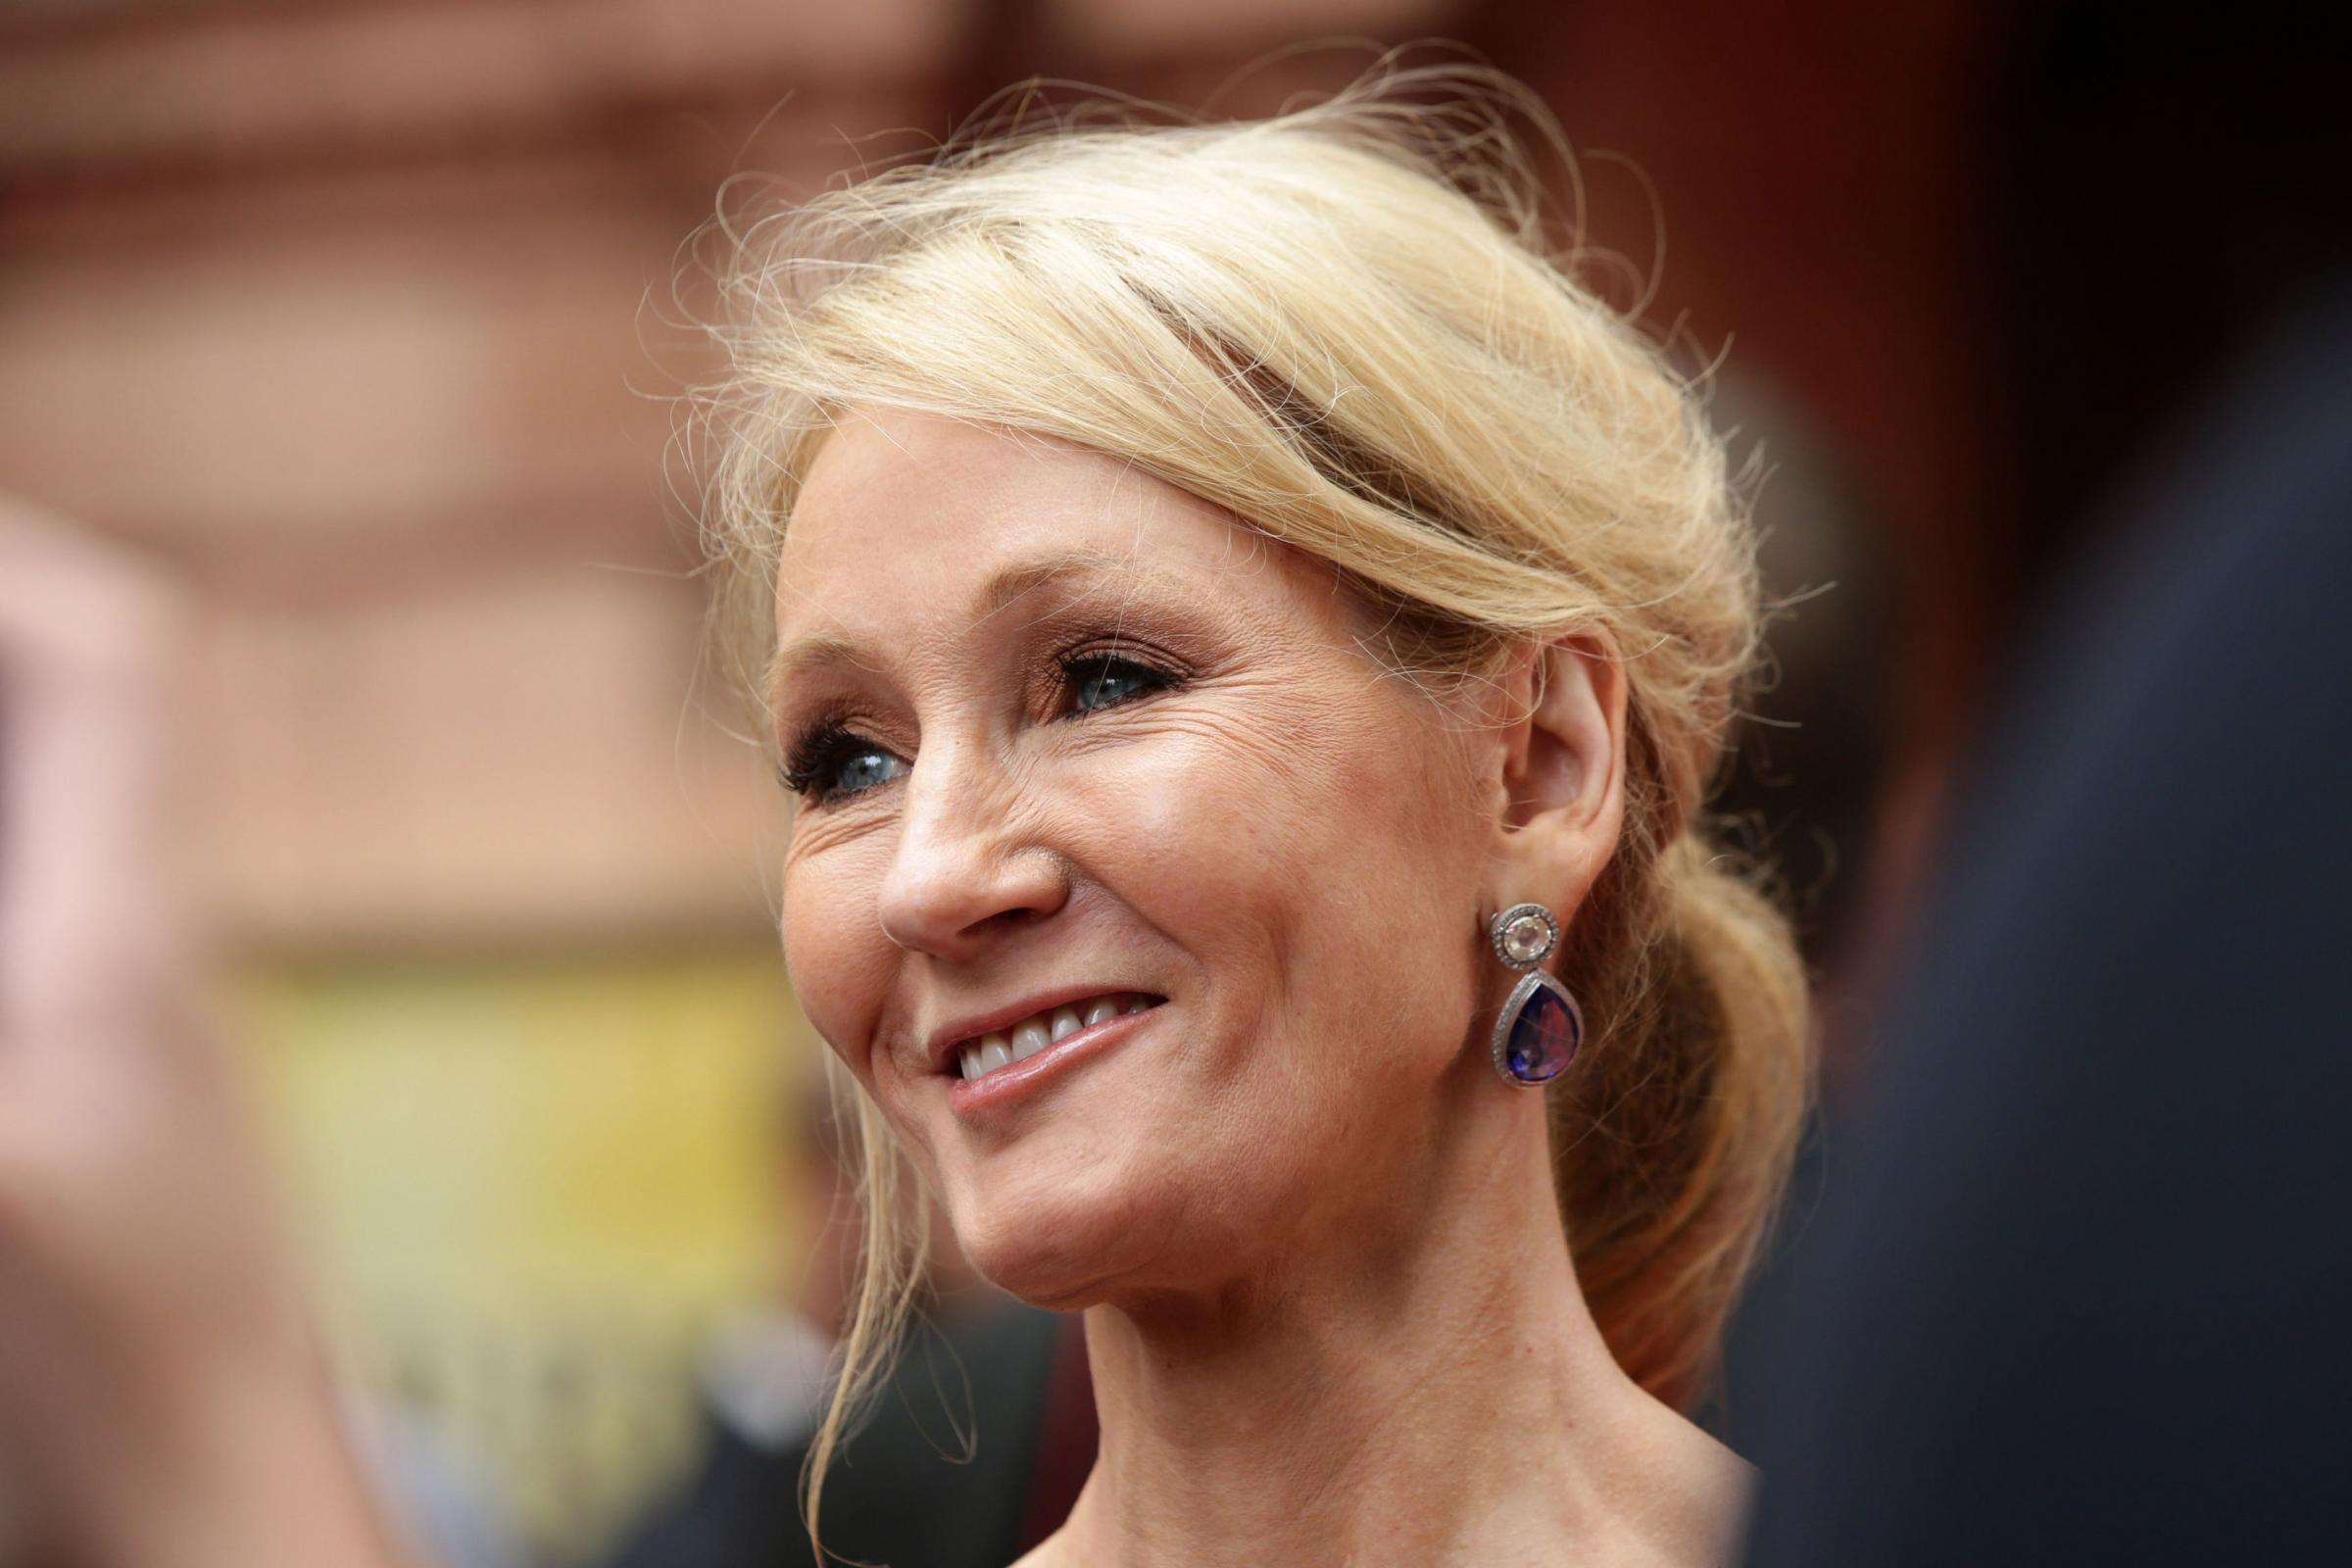 File photo dated 30/07/16 of JK Rowling, who has been made a Companion of Honour in the Queen's Birthday Honours List.